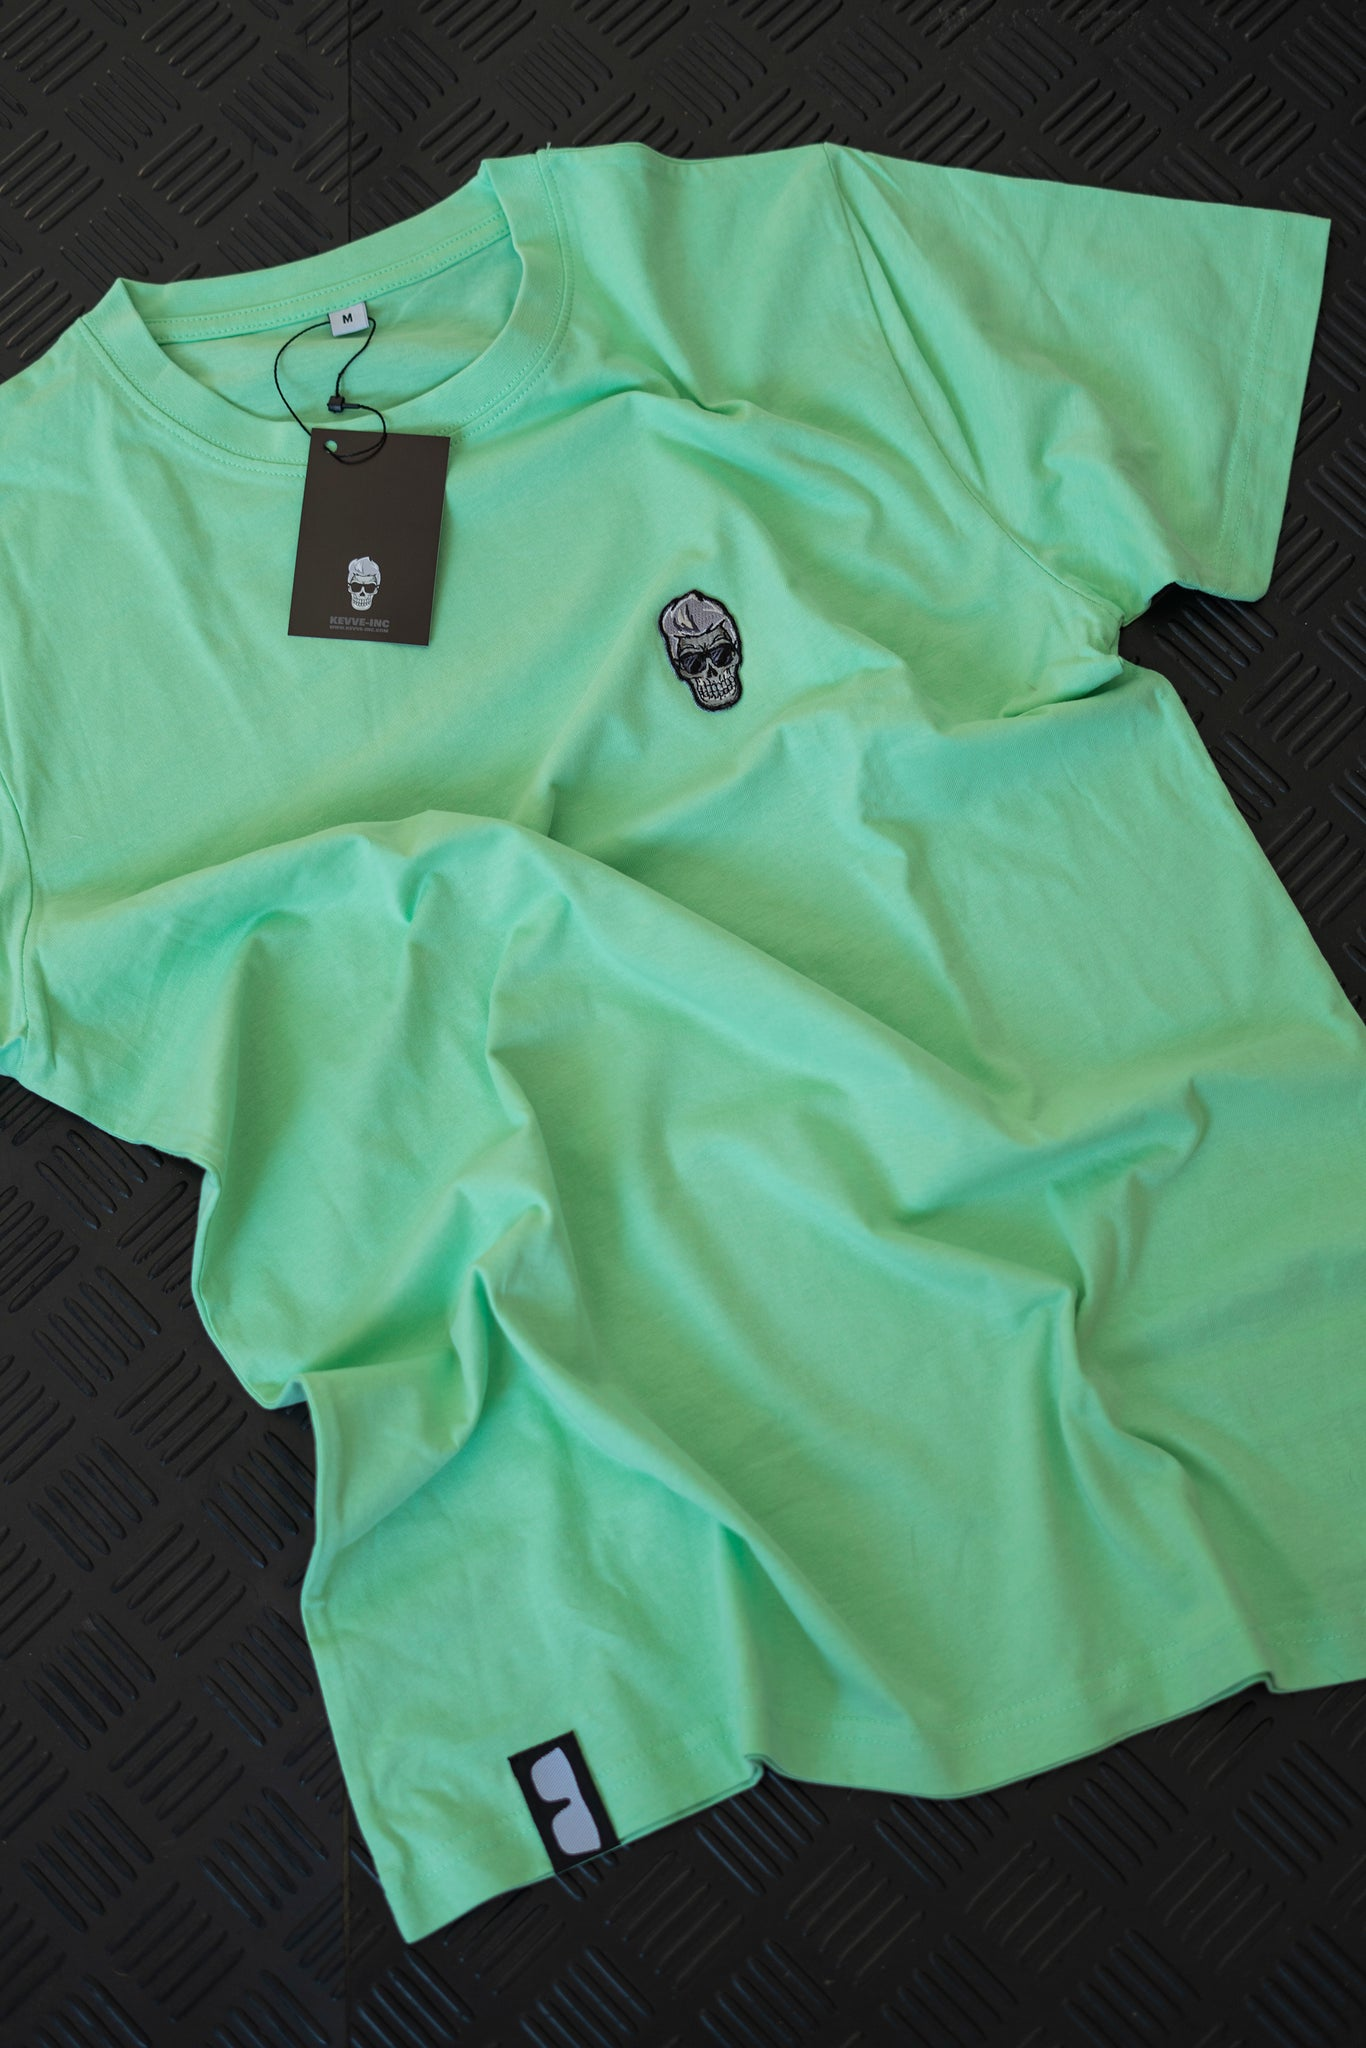 SIGNATURE SERIES T-SHIRT MINTY FRESH